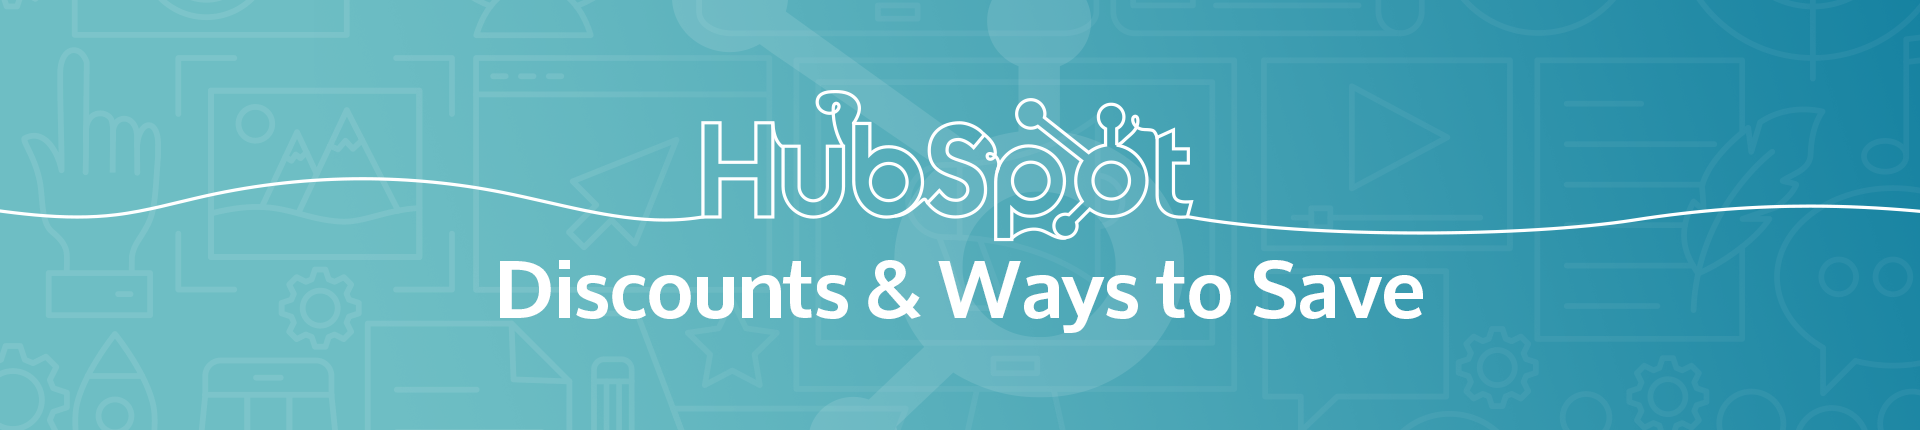 HubSpot Discounts and Ways to save banner